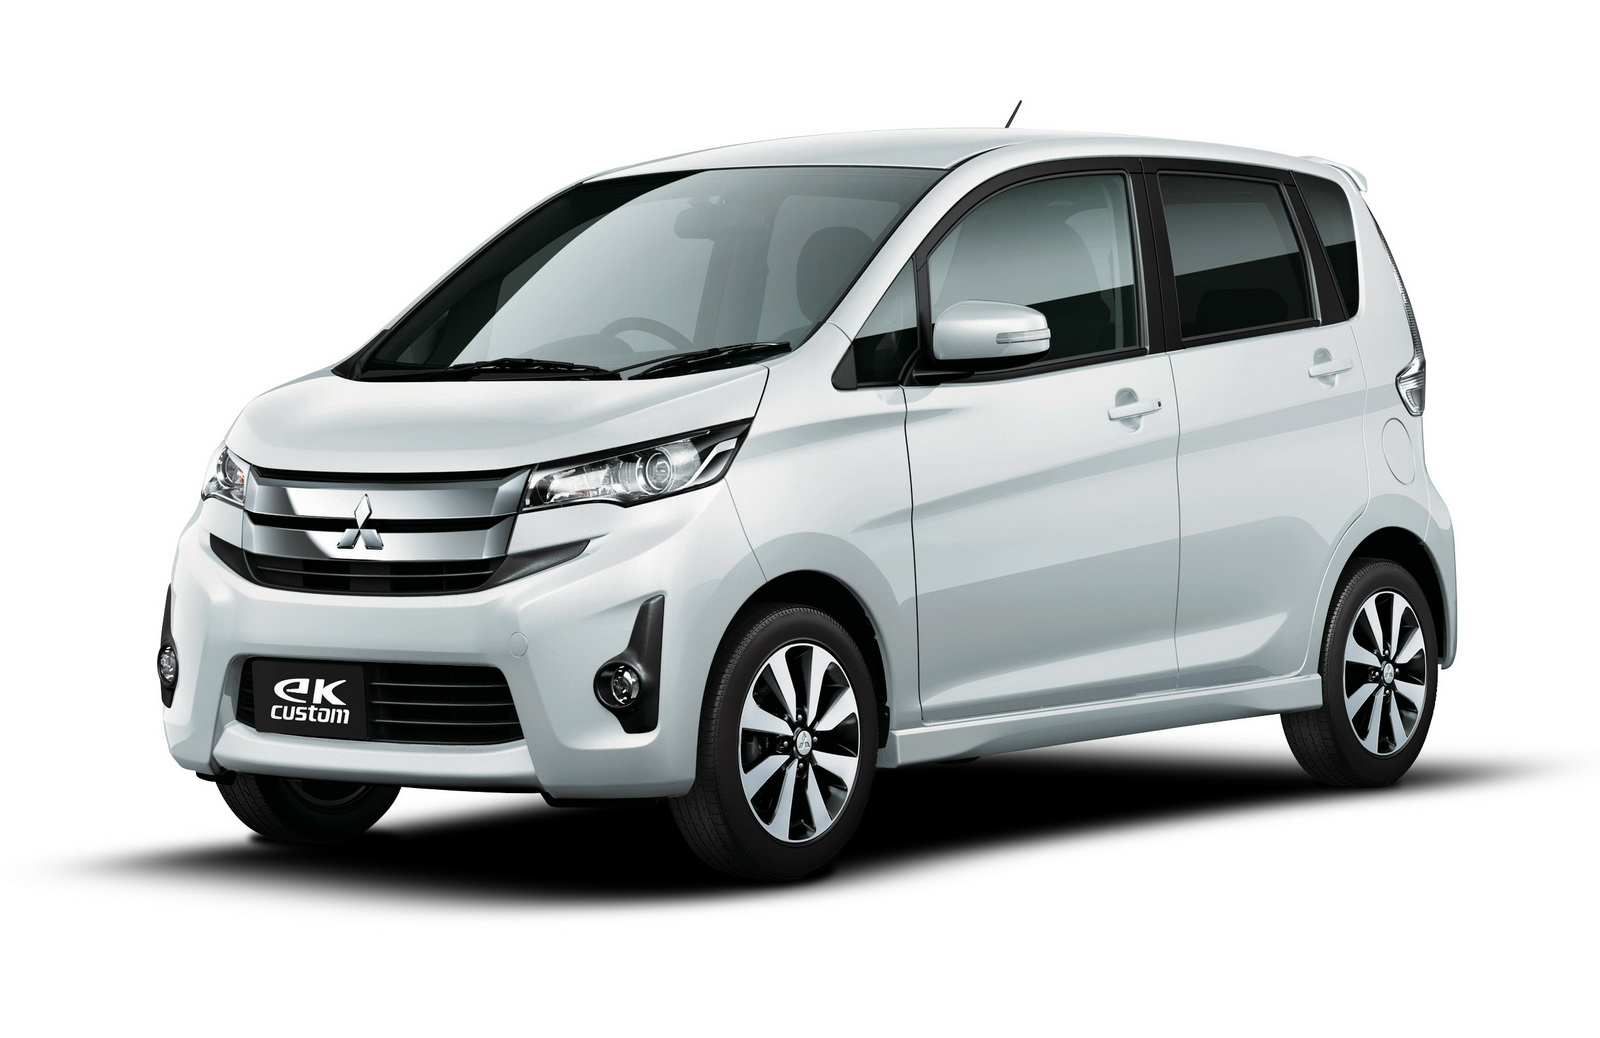 mitsubishi motors launches all new ek wagon ek custom